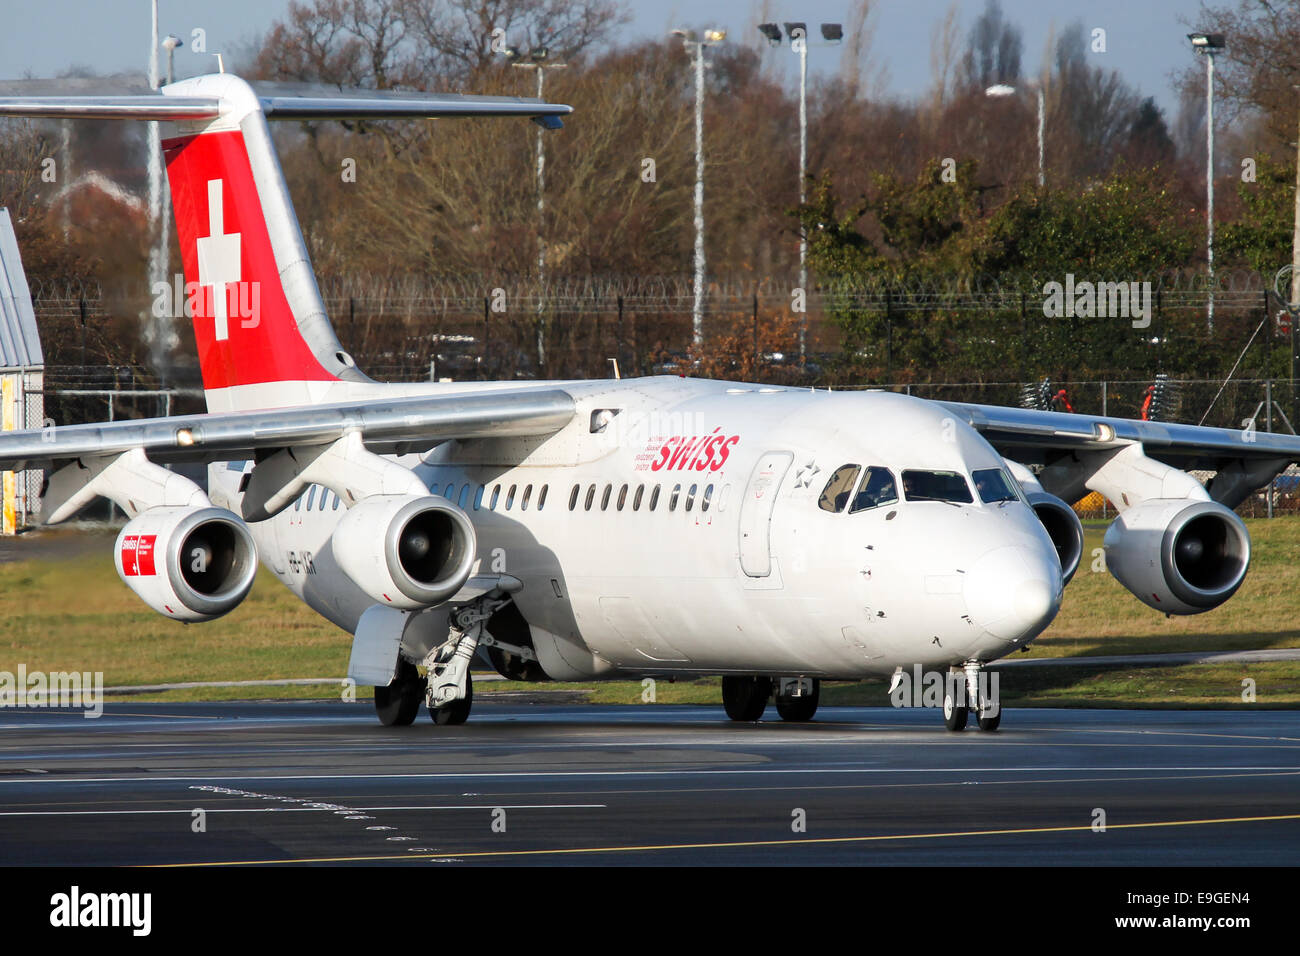 Swiss International Airlines British Aerospace RJ100 lines up on runway 23R at Manchester airport. - Stock Image